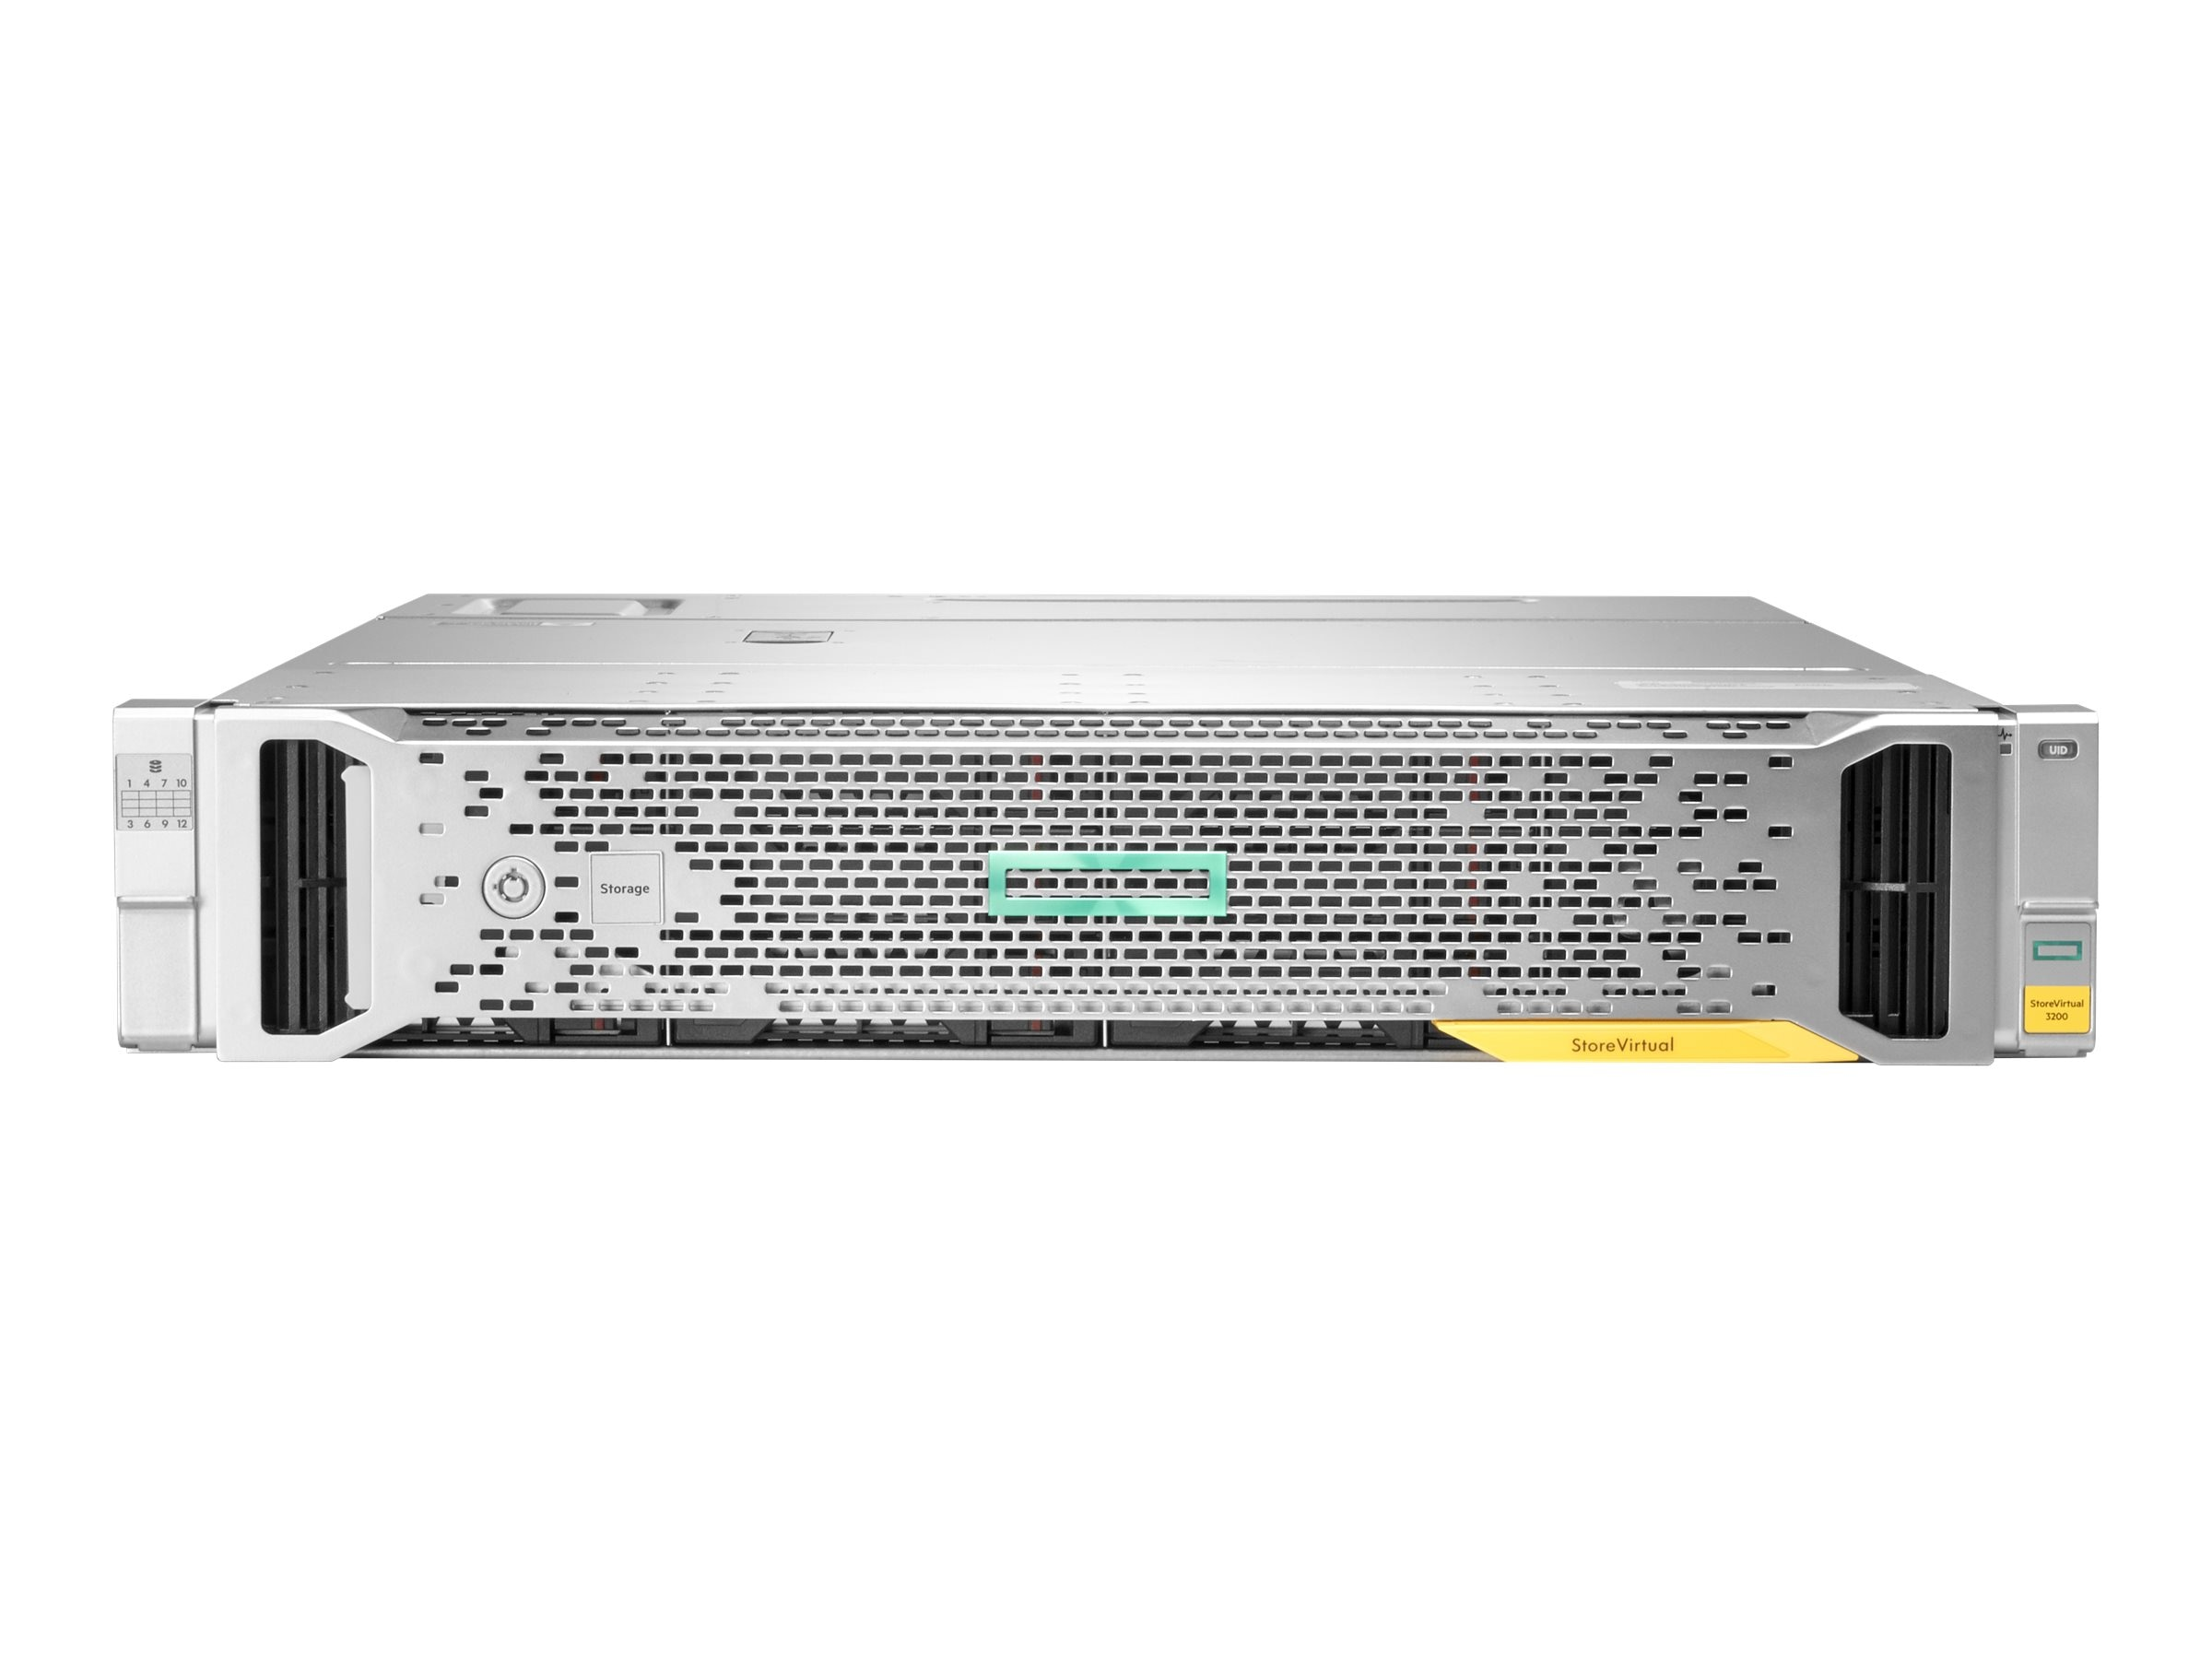 Hewlett Packard Enterprise N9X25A Image 2